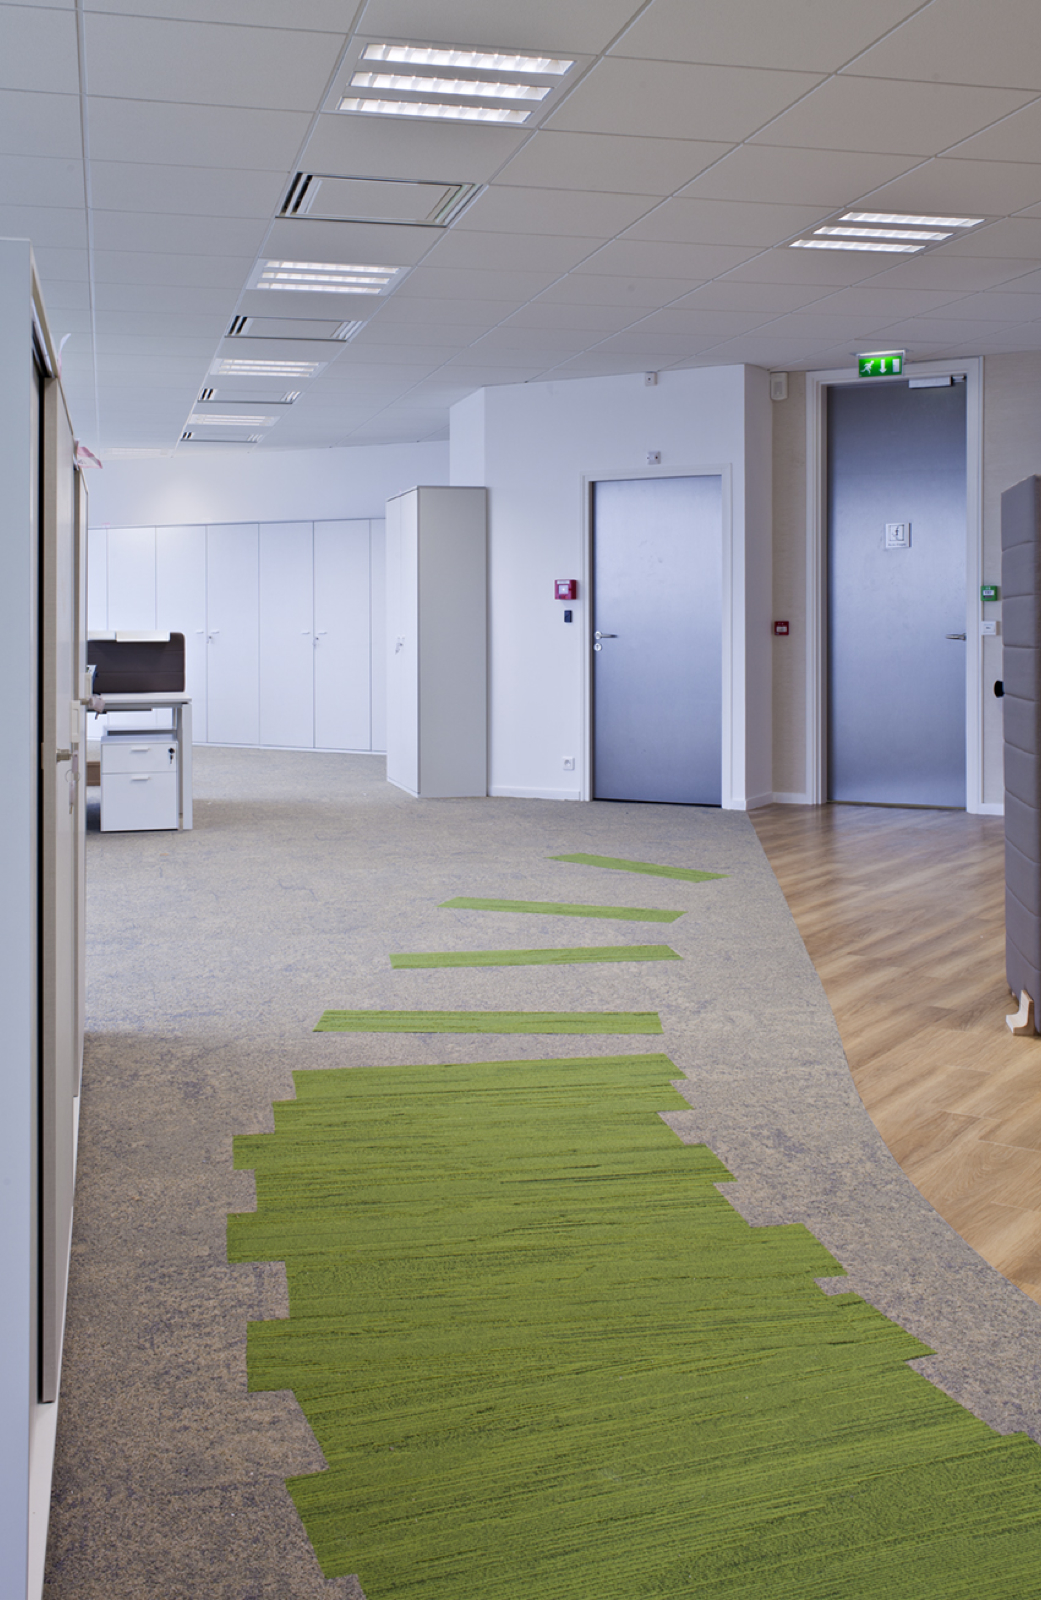 Drawn planks office Environment Pinterest Architectural office A